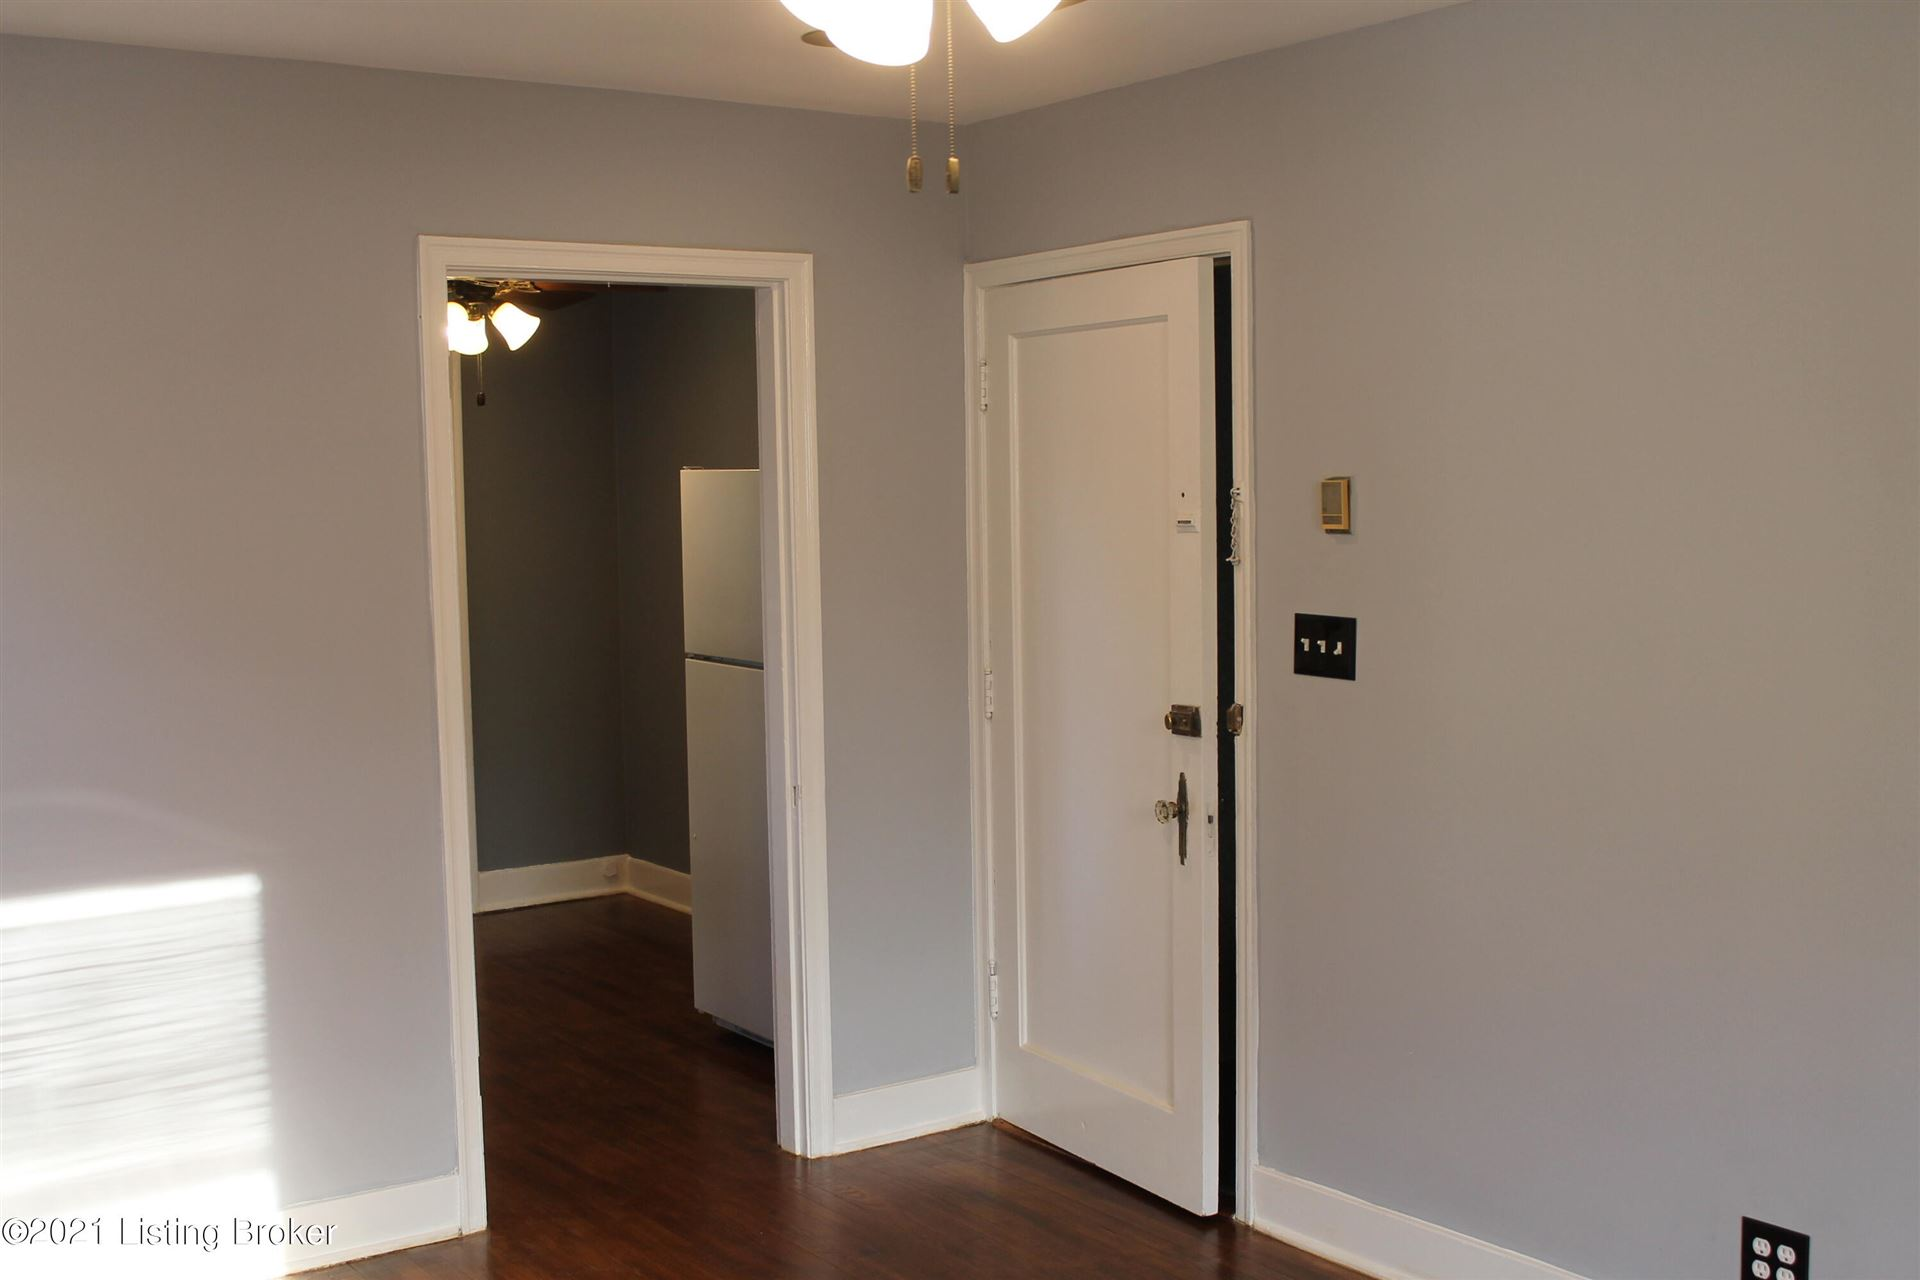 Photo for 127 Kennedy Ave #3, Louisville, KY 40206 (MLS # 1586565)